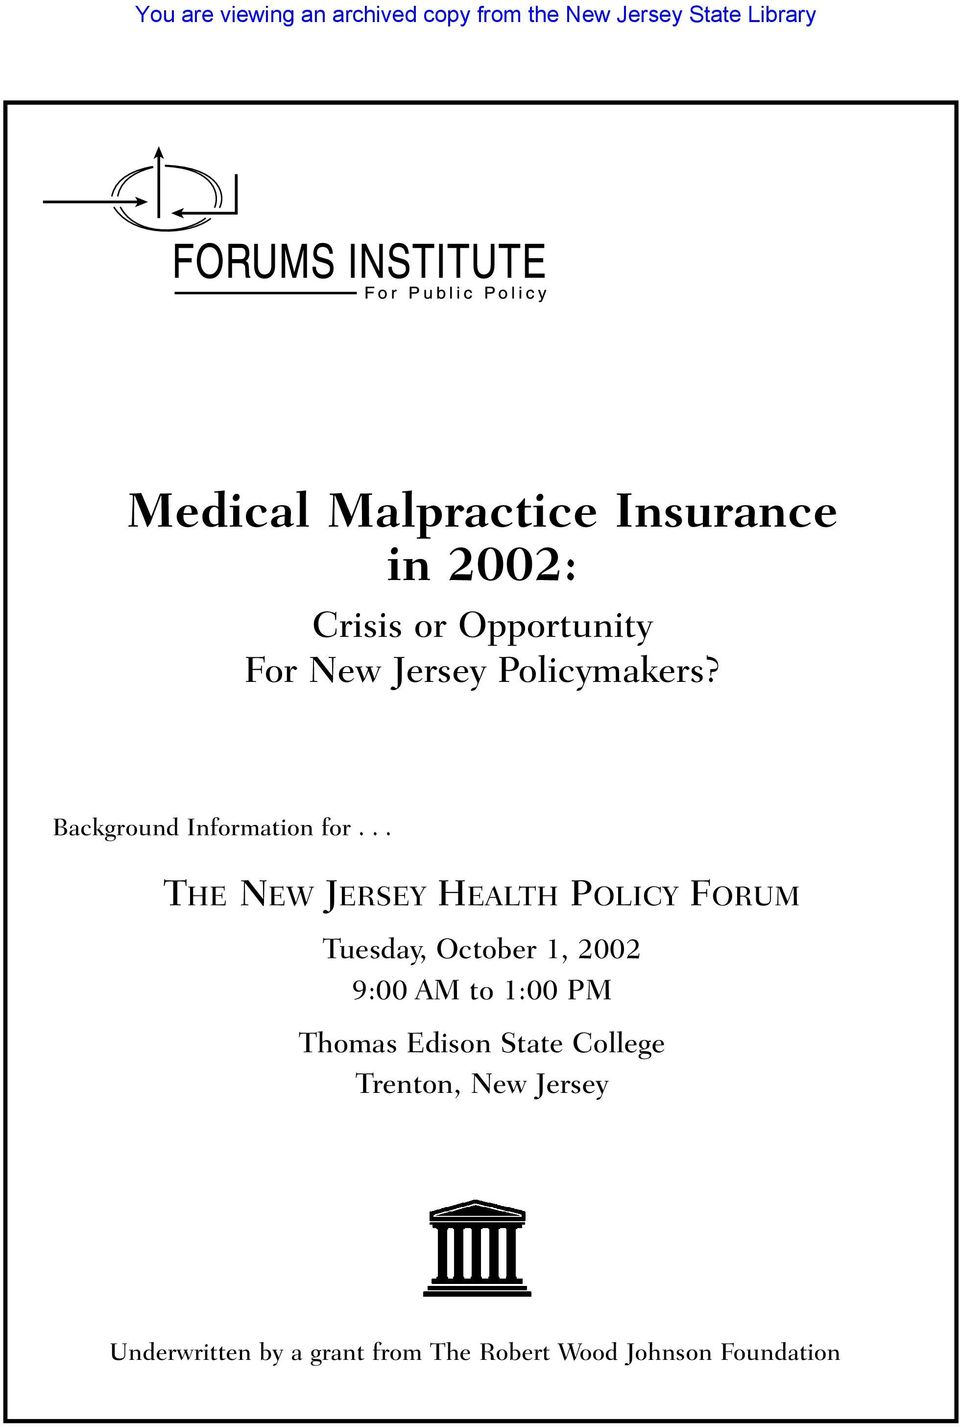 .. THE NEW JERSEY HEALTH POLICY FORUM Tuesday, October 1, 2002 9:00 AM to